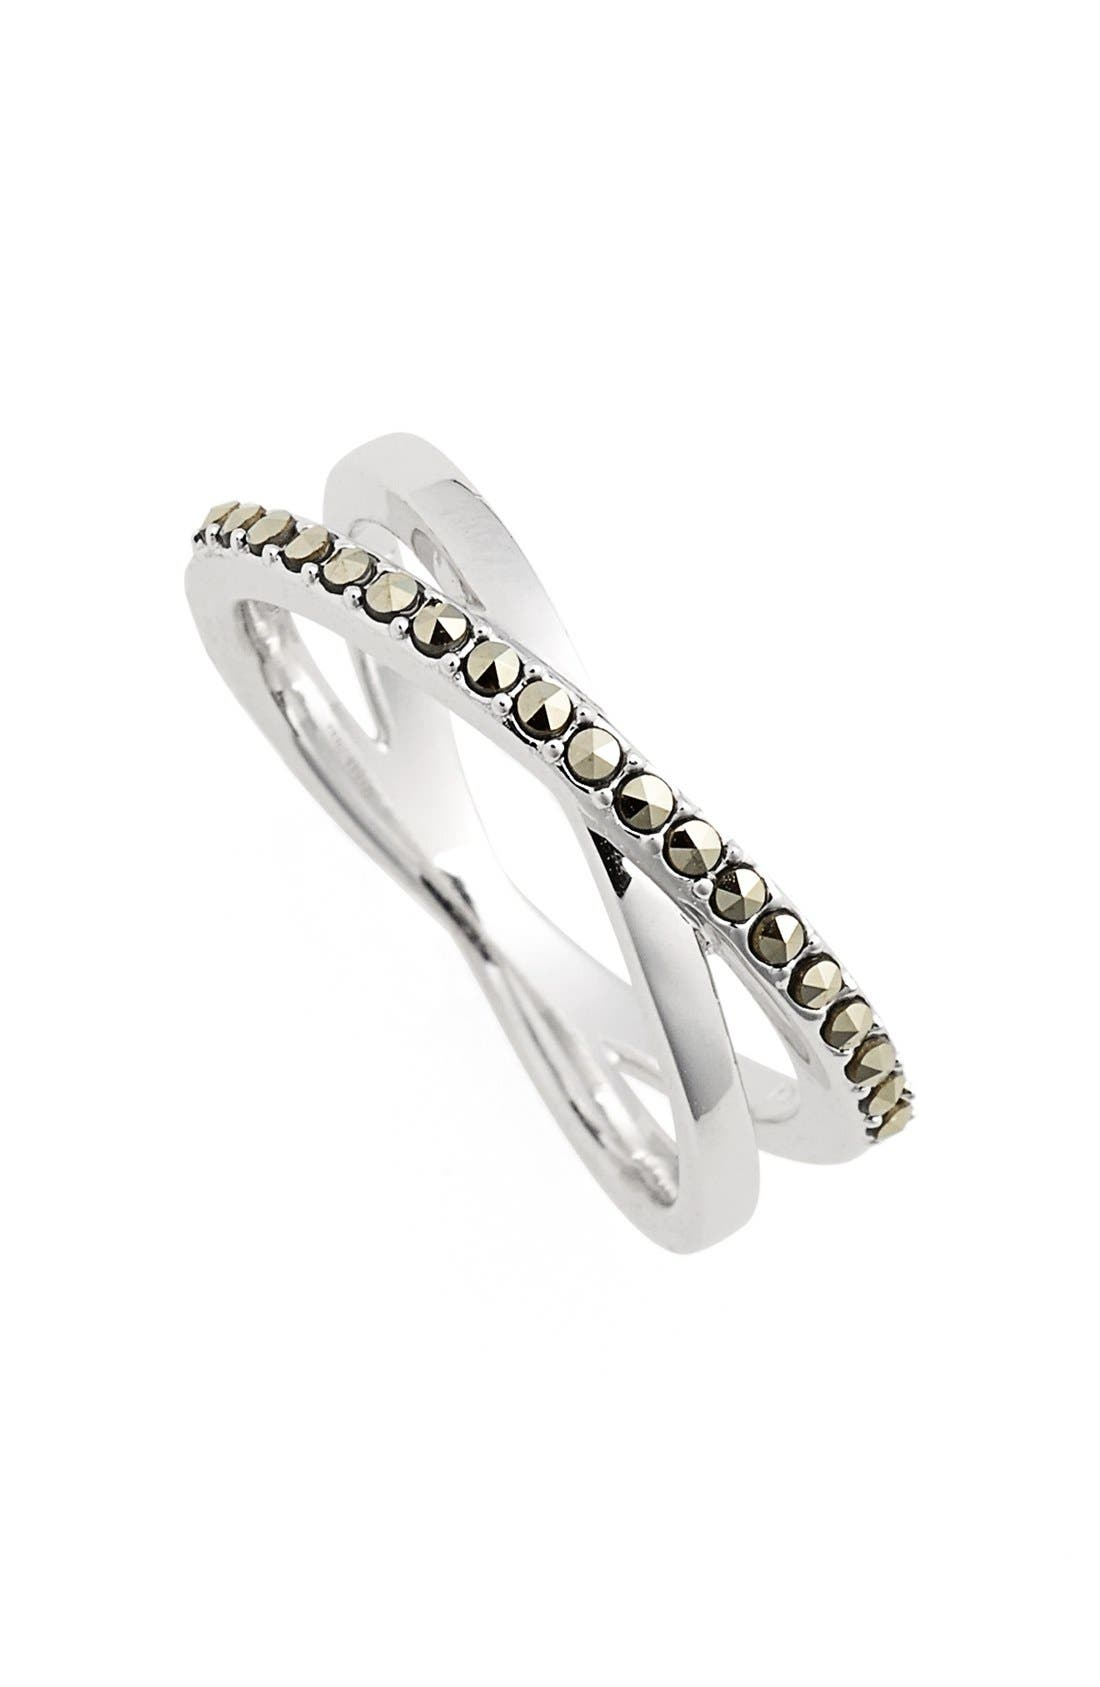 Alternate Image 1 Selected - Judith Jack Crisscross Marcasite Ring